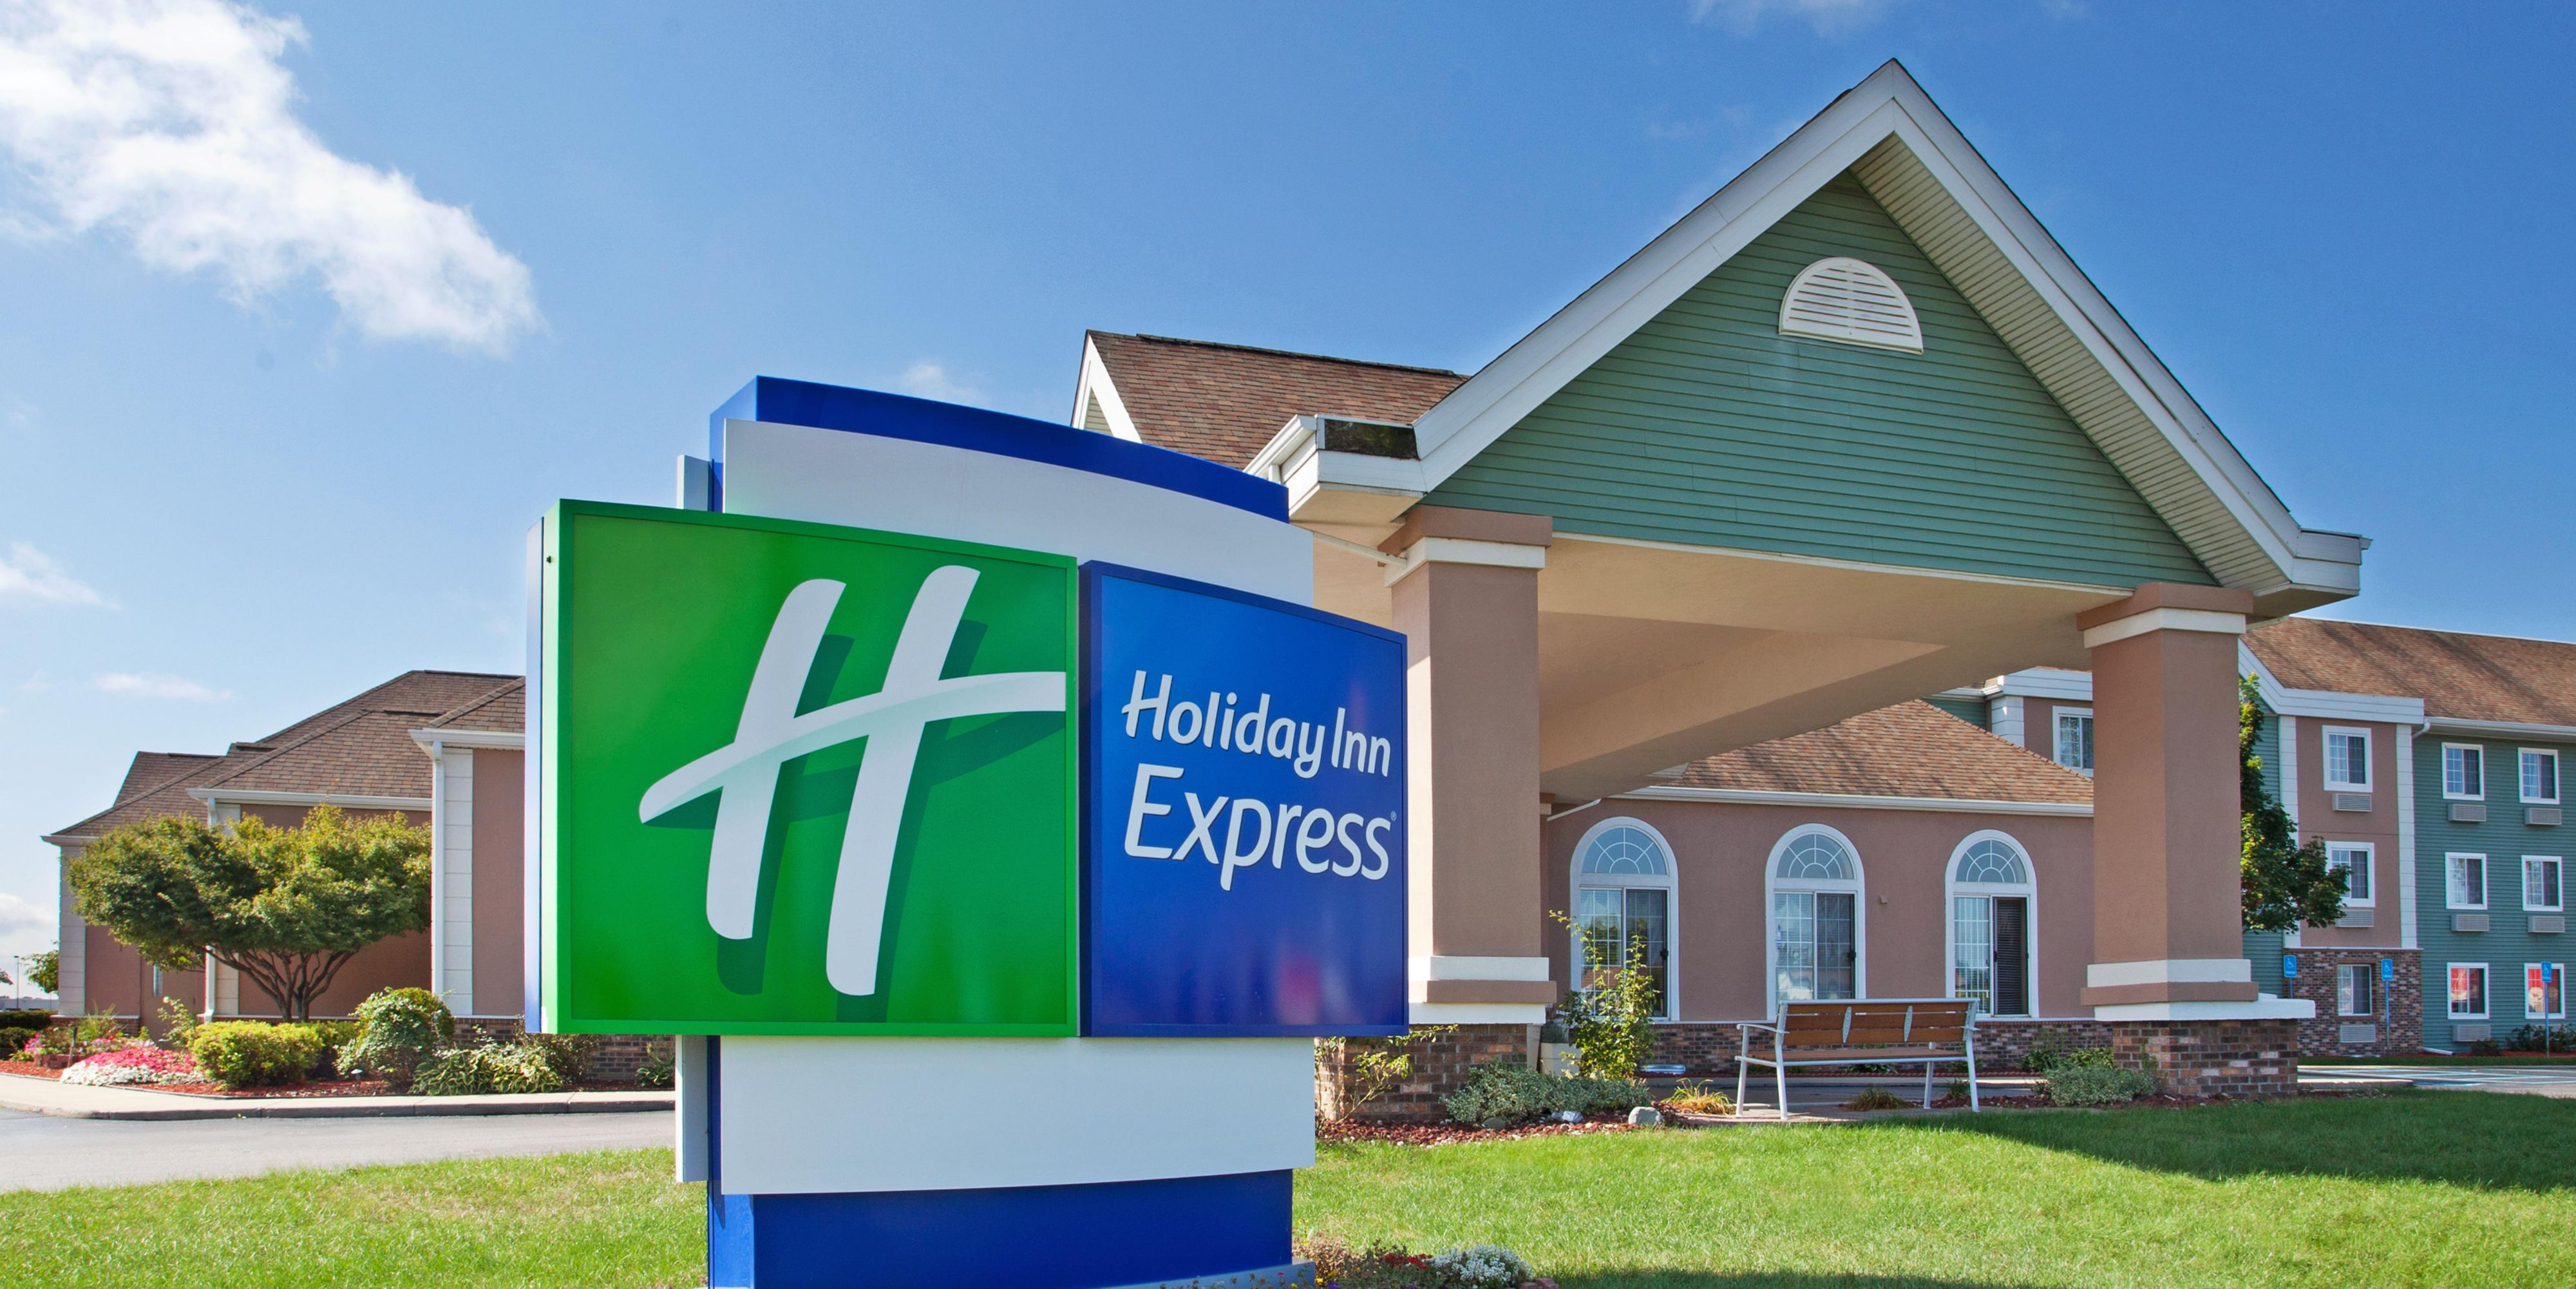 Holiday Inn Express Birch Run 4244567958 2x1